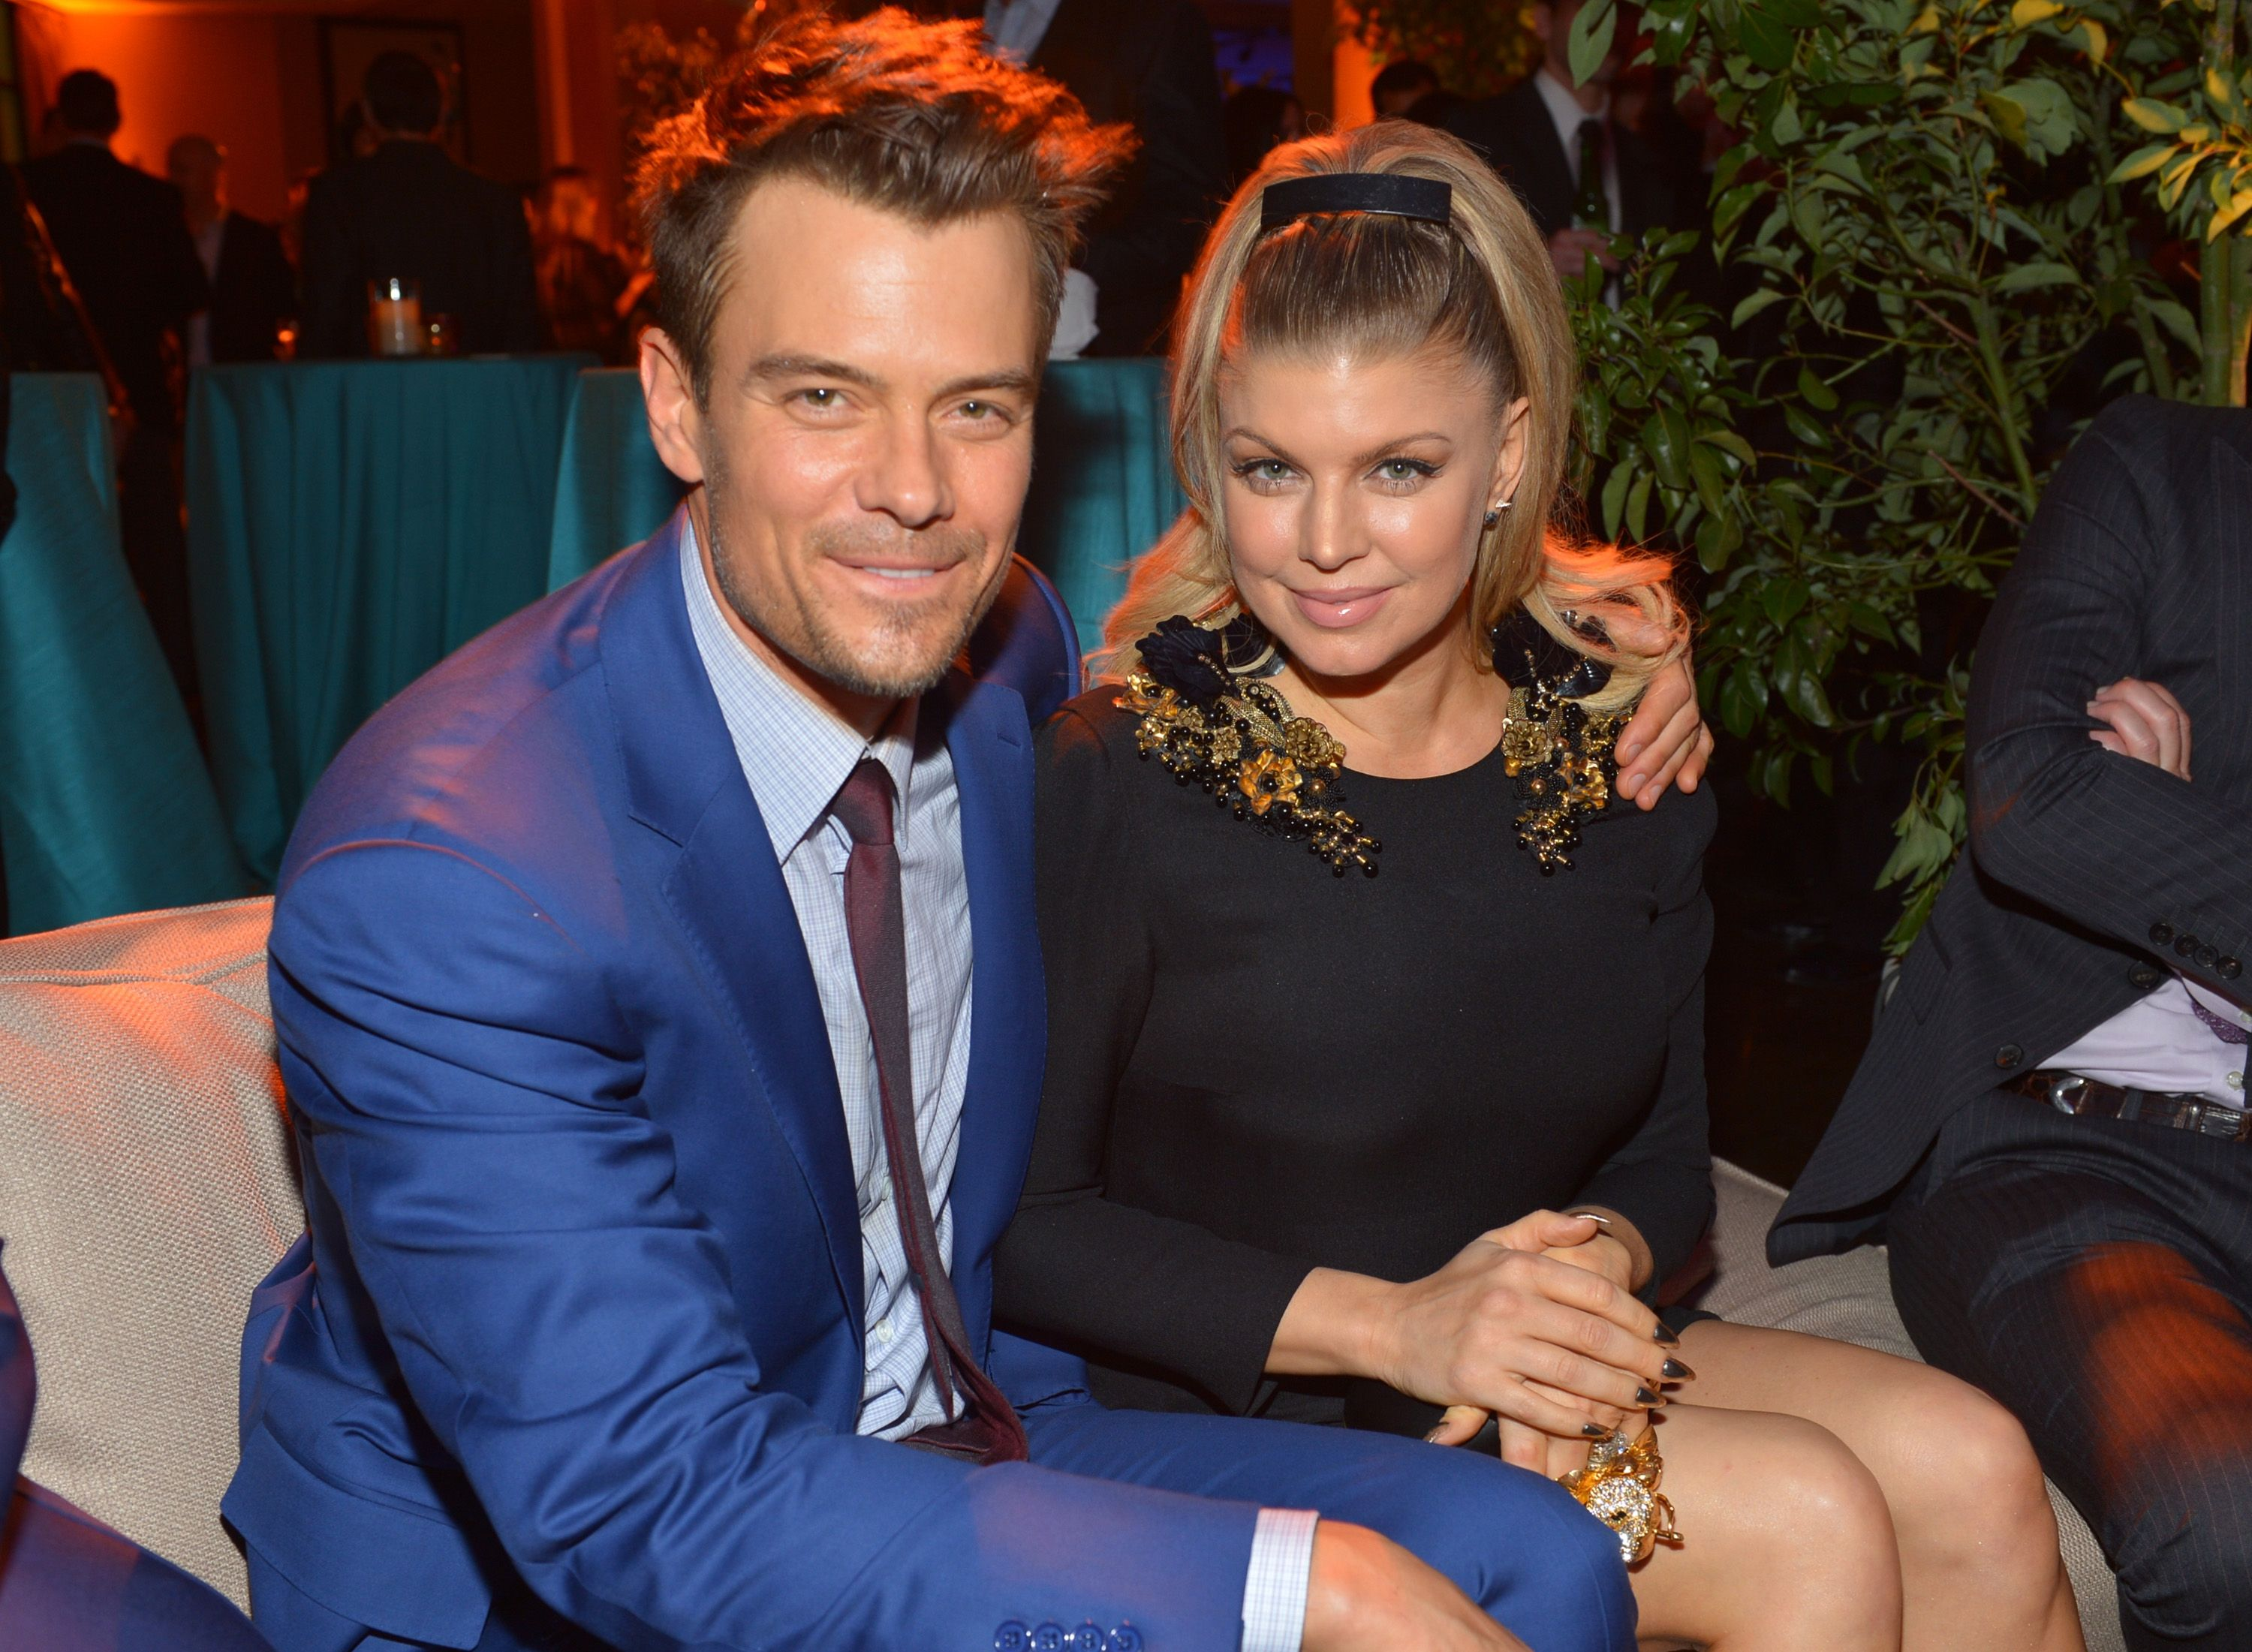 Fergie And Josh Duhamel Have Split Up After 8 Years Of Marriage